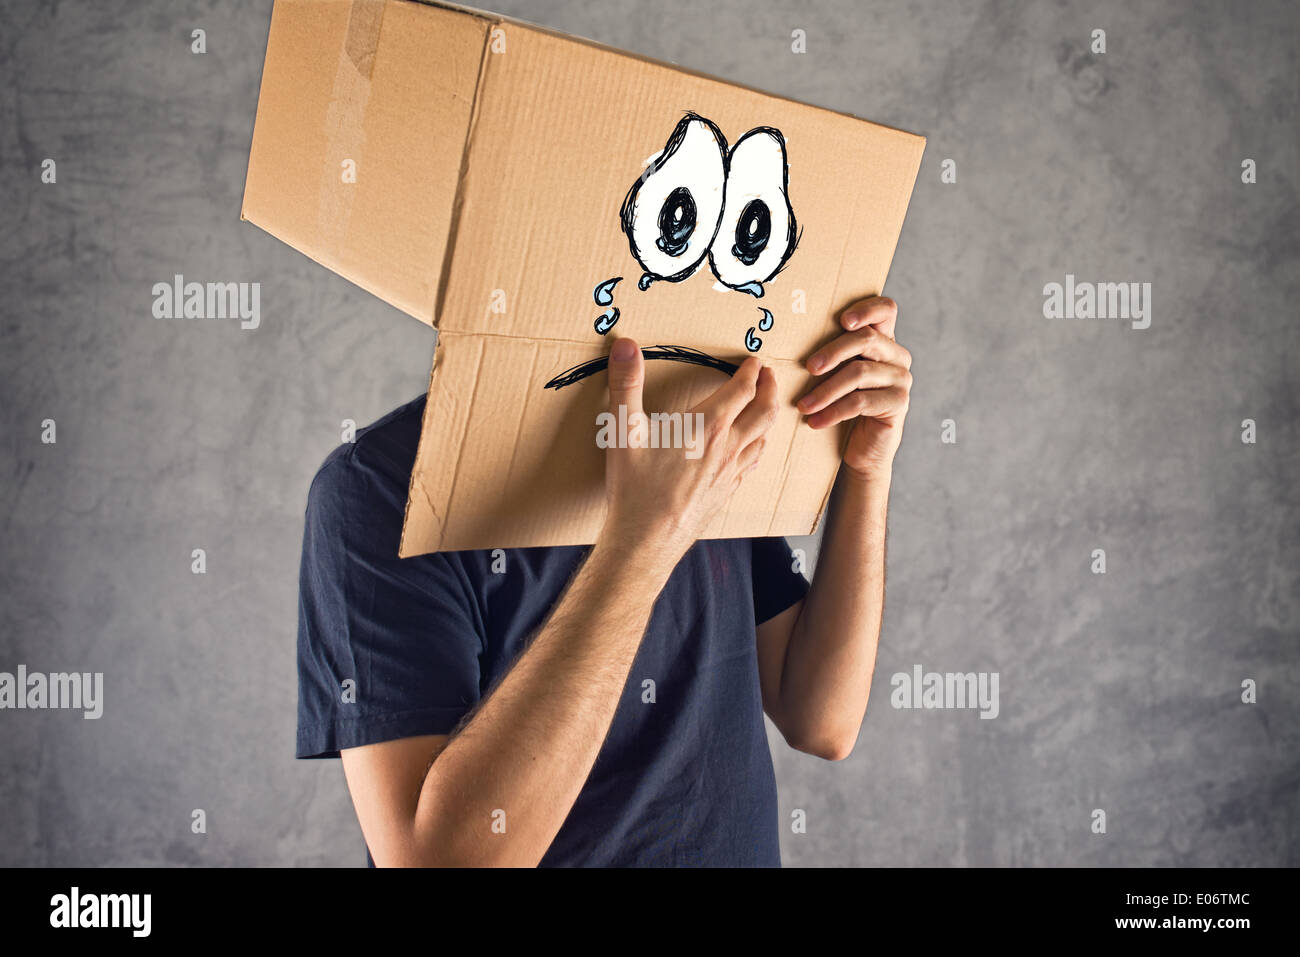 Man with cardboard box on his head and sad crying face expression. Concept of sadness and depression. Stock Photo